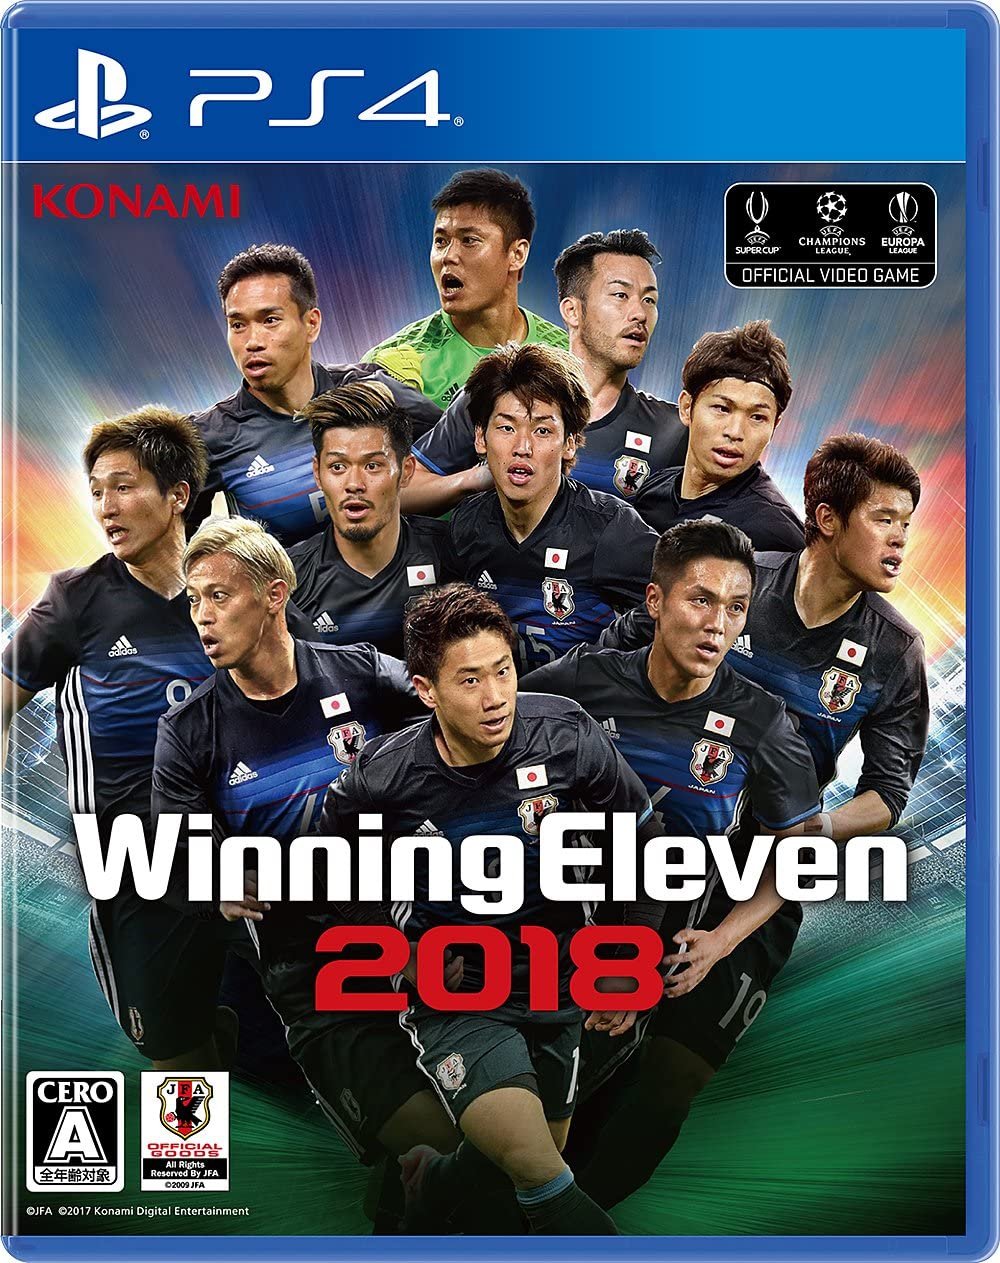 Konami PES Soccer Winning Eleven 2018 SONY PS4 PLAYSTATION 4 JAPANESE VERSION Region Free [video game]: Amazon.es: Videojuegos